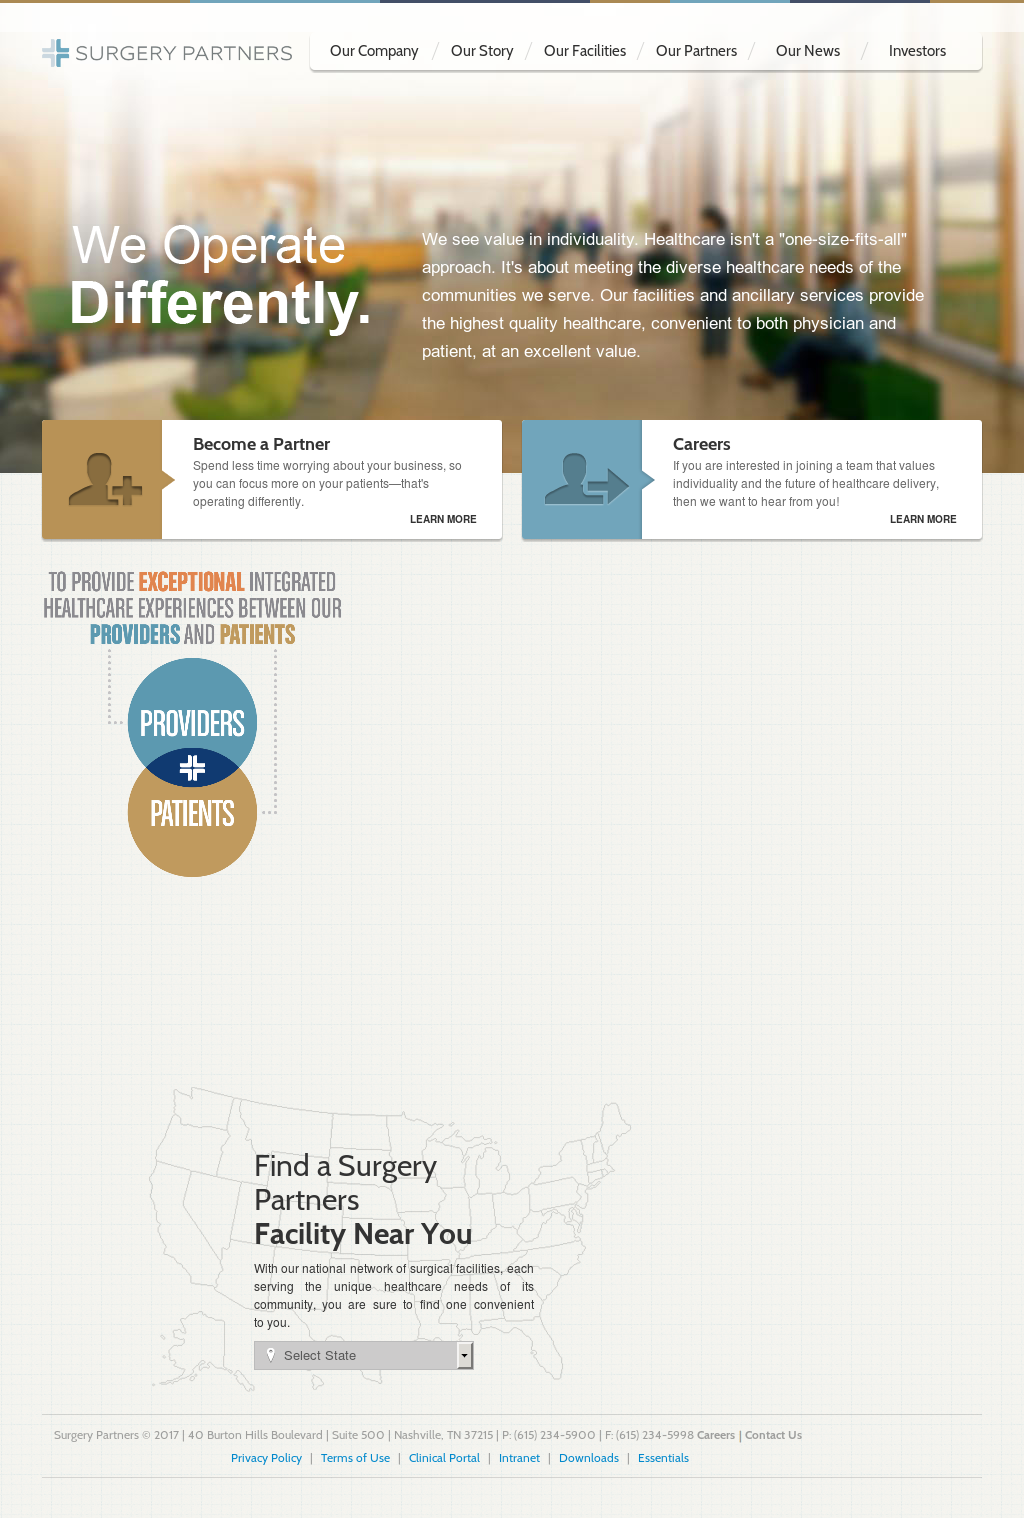 Surgery Partners Competitors, Revenue and Employees - Owler